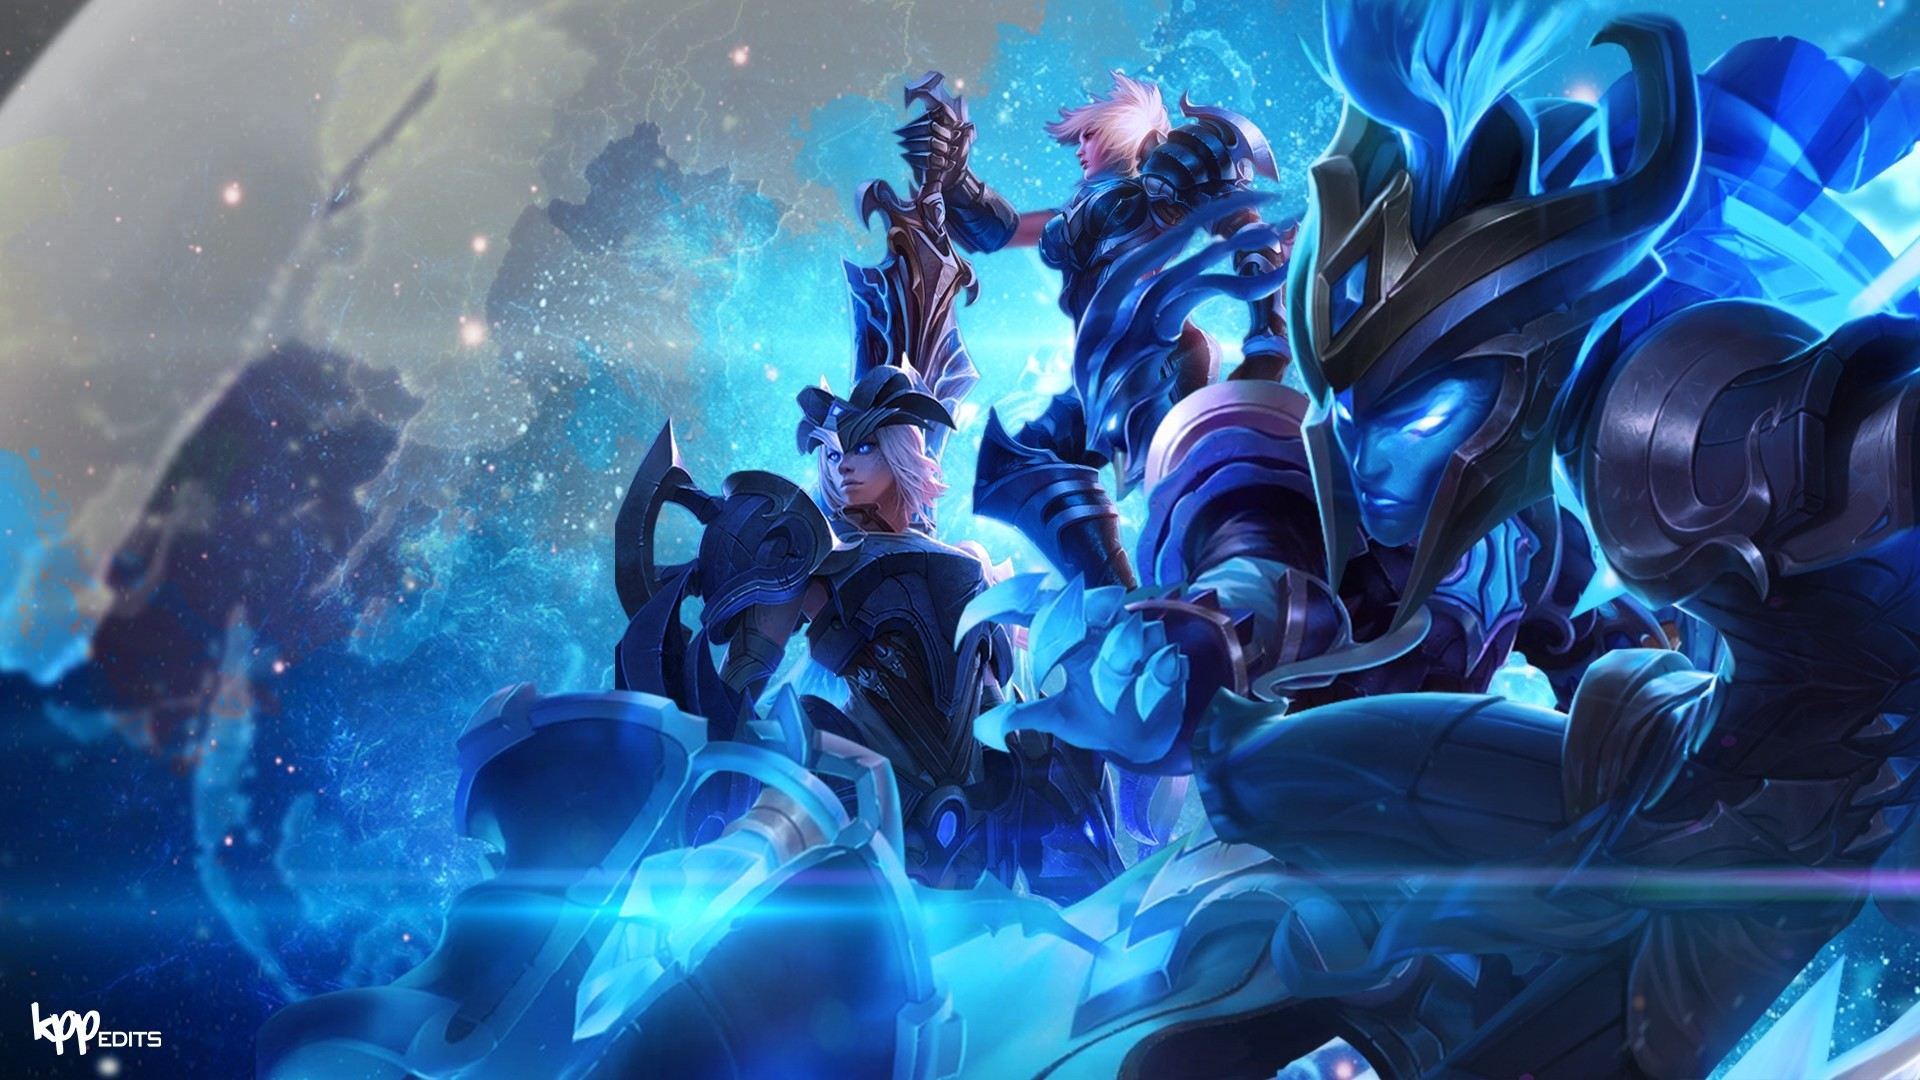 League Of Legends hd wallpaper for pc